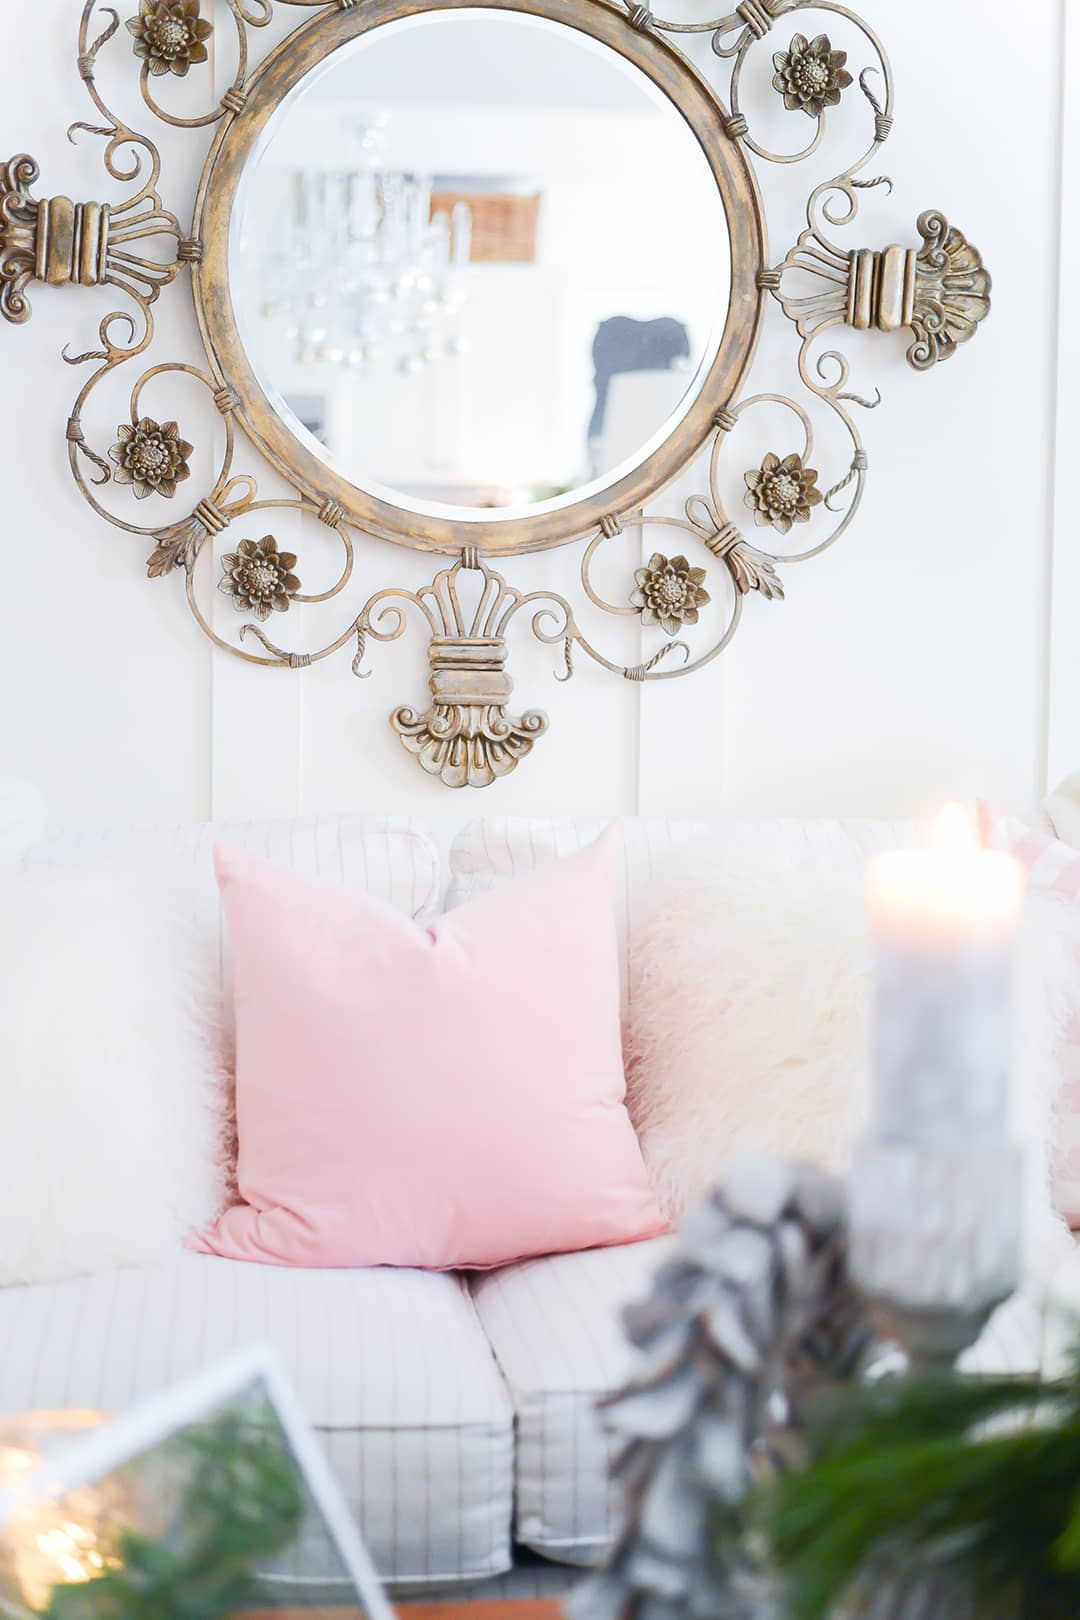 Sofa showcasing pastel pink pillows, white fur pillows, along with a beautiful gold hanging mirror above.